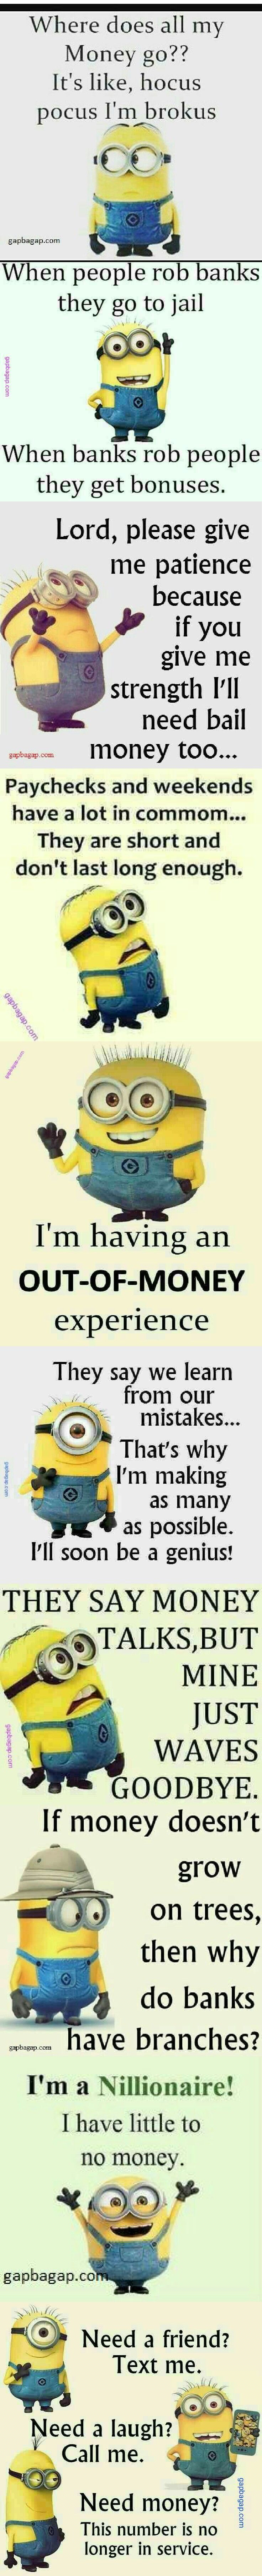 Top 10 Funny Memes About Money By The Minions Funny Friend Memes Funny Minion Memes Funny Memes Comebacks